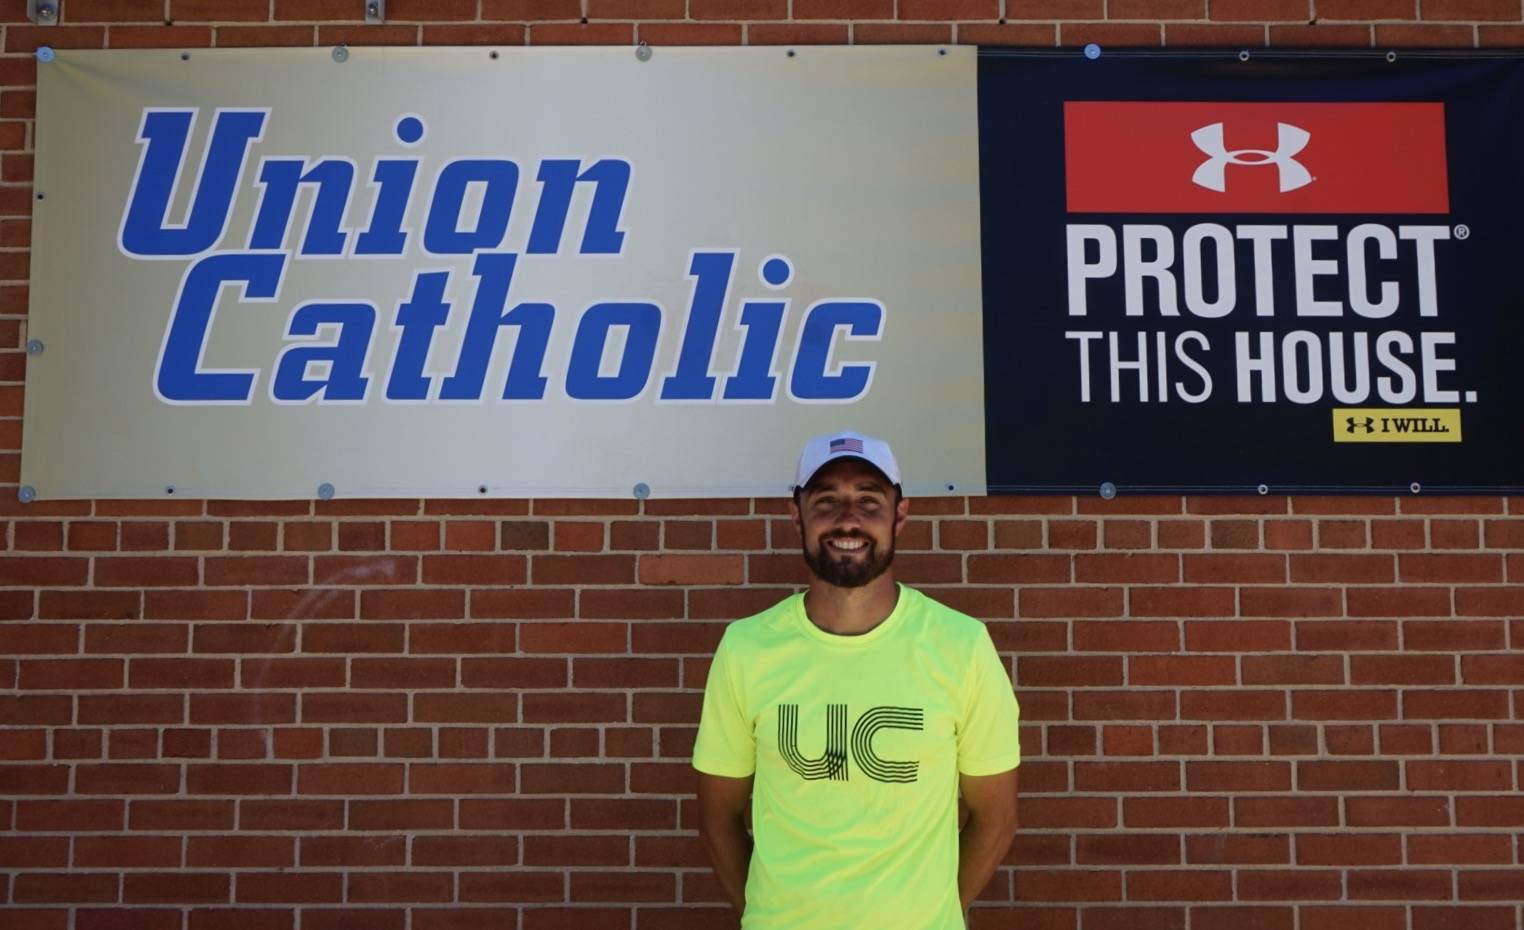 Union Catholic's Mike McCabe Named One of NJ's Most Influential People in HS Sports